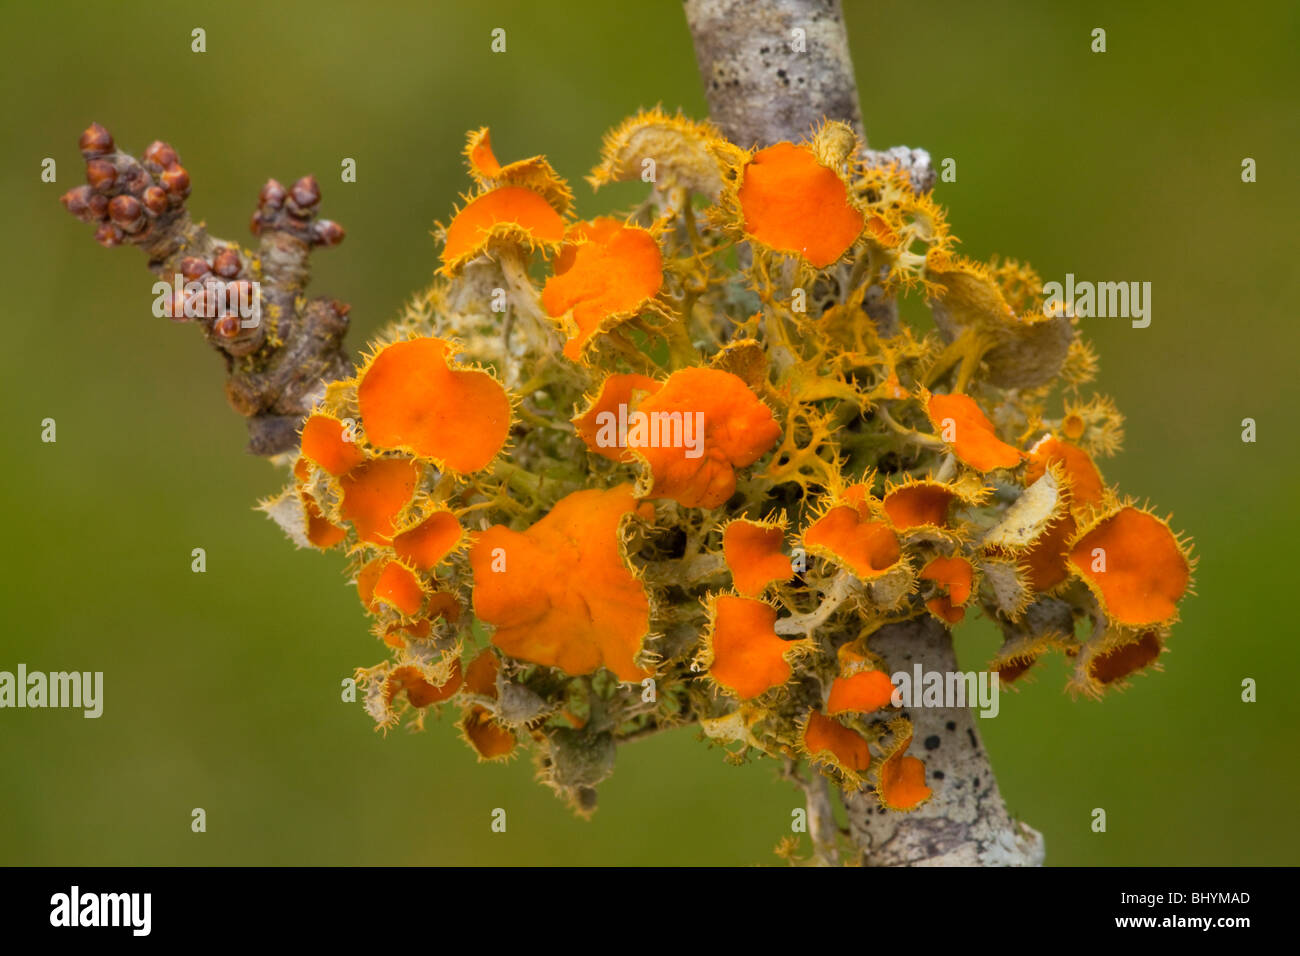 Goldeneye lichen, Teloschistes chrysophthalmus on blackthorn twig. Extremely rare in UK, formerly thought to be - Stock Image